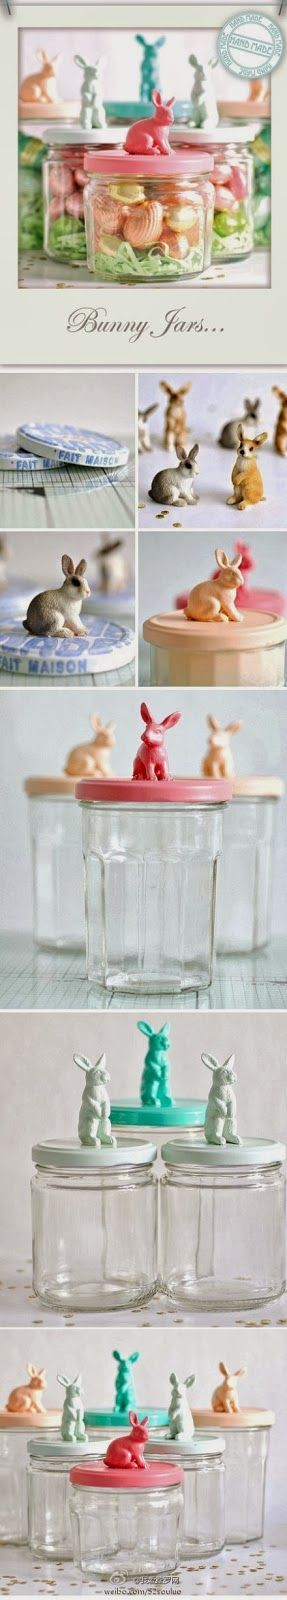 Easy DIY Crafts: Bunny jars,, Easy to made